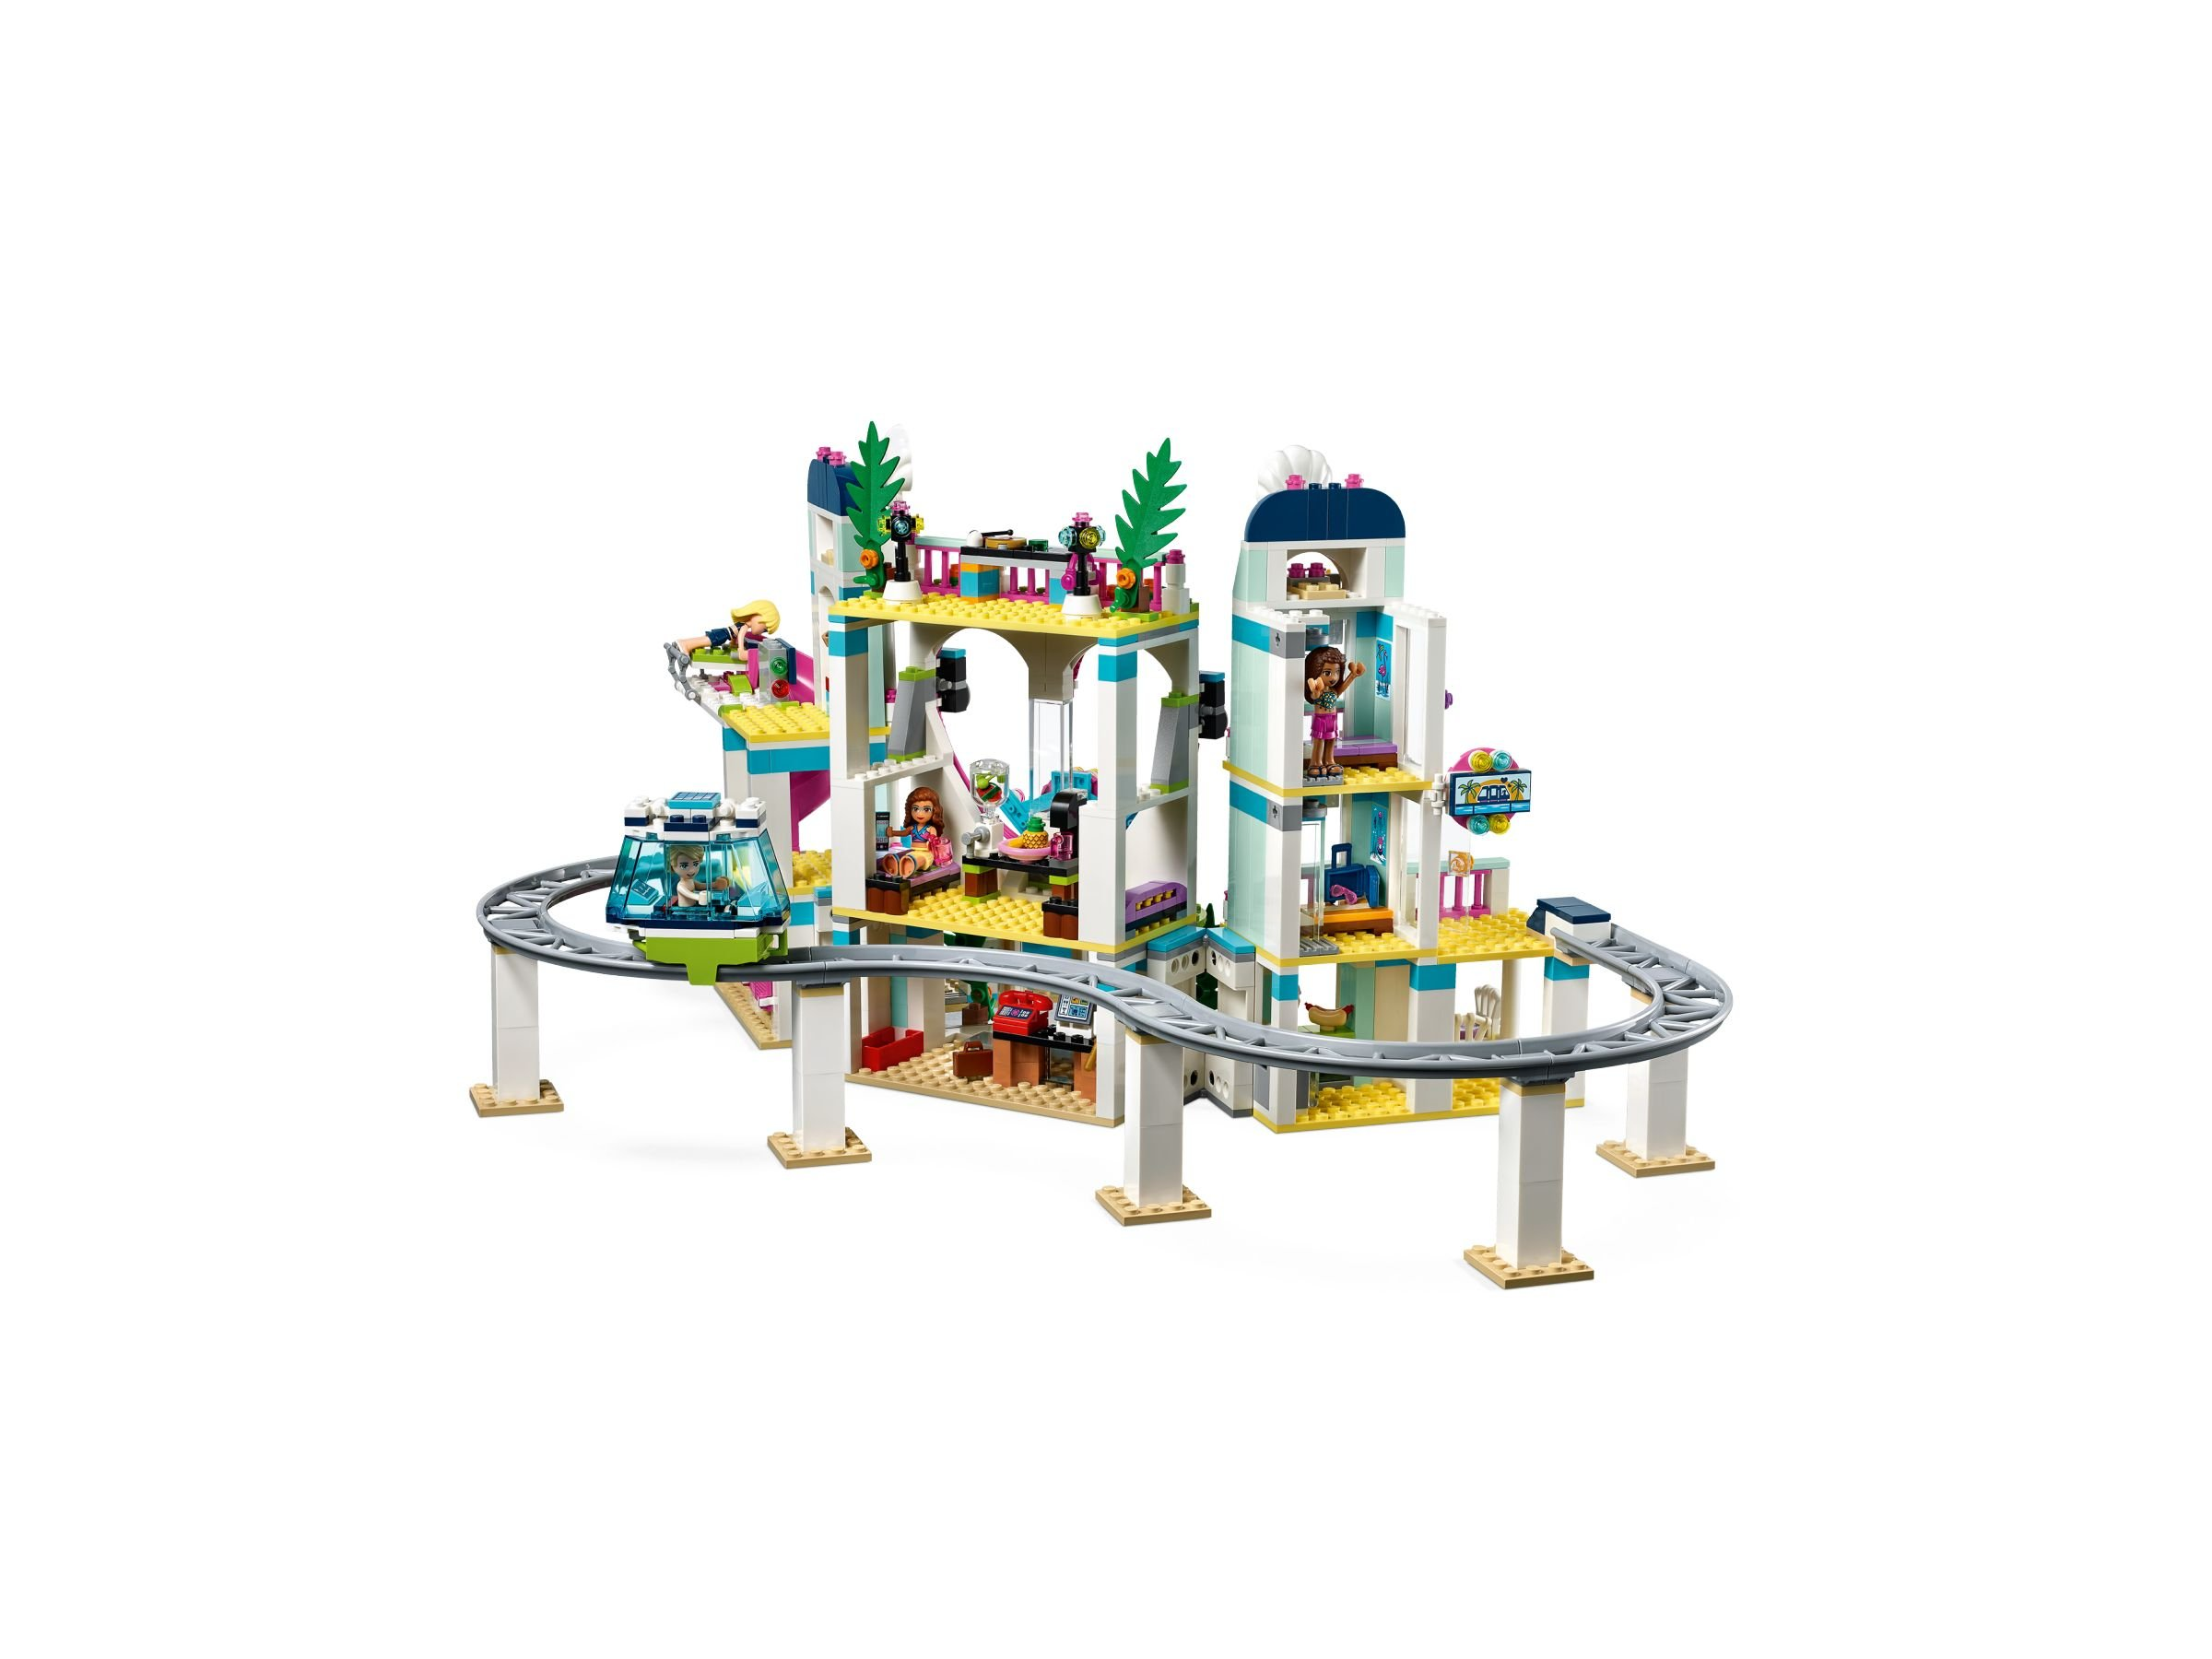 LEGO Friends 41347 Heartlake City Resort LEGO_41347_alt3.jpg